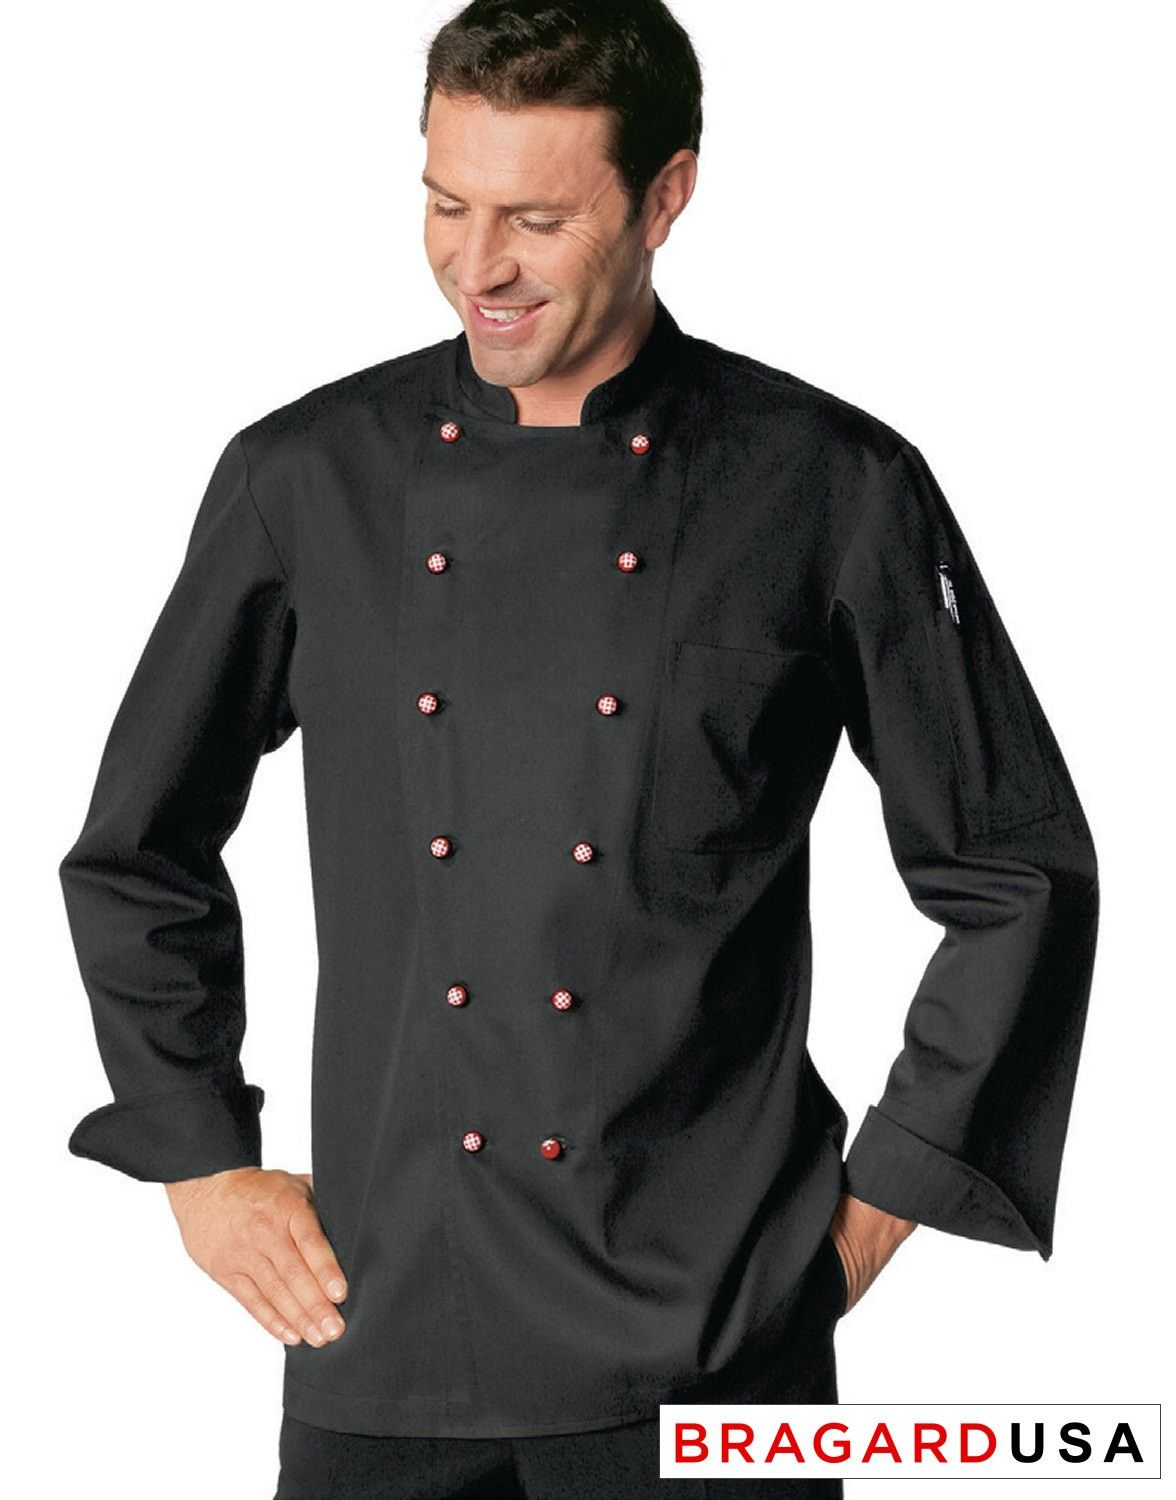 Narvic Chef Jacket White Jackets, Chef jackets, Clothes